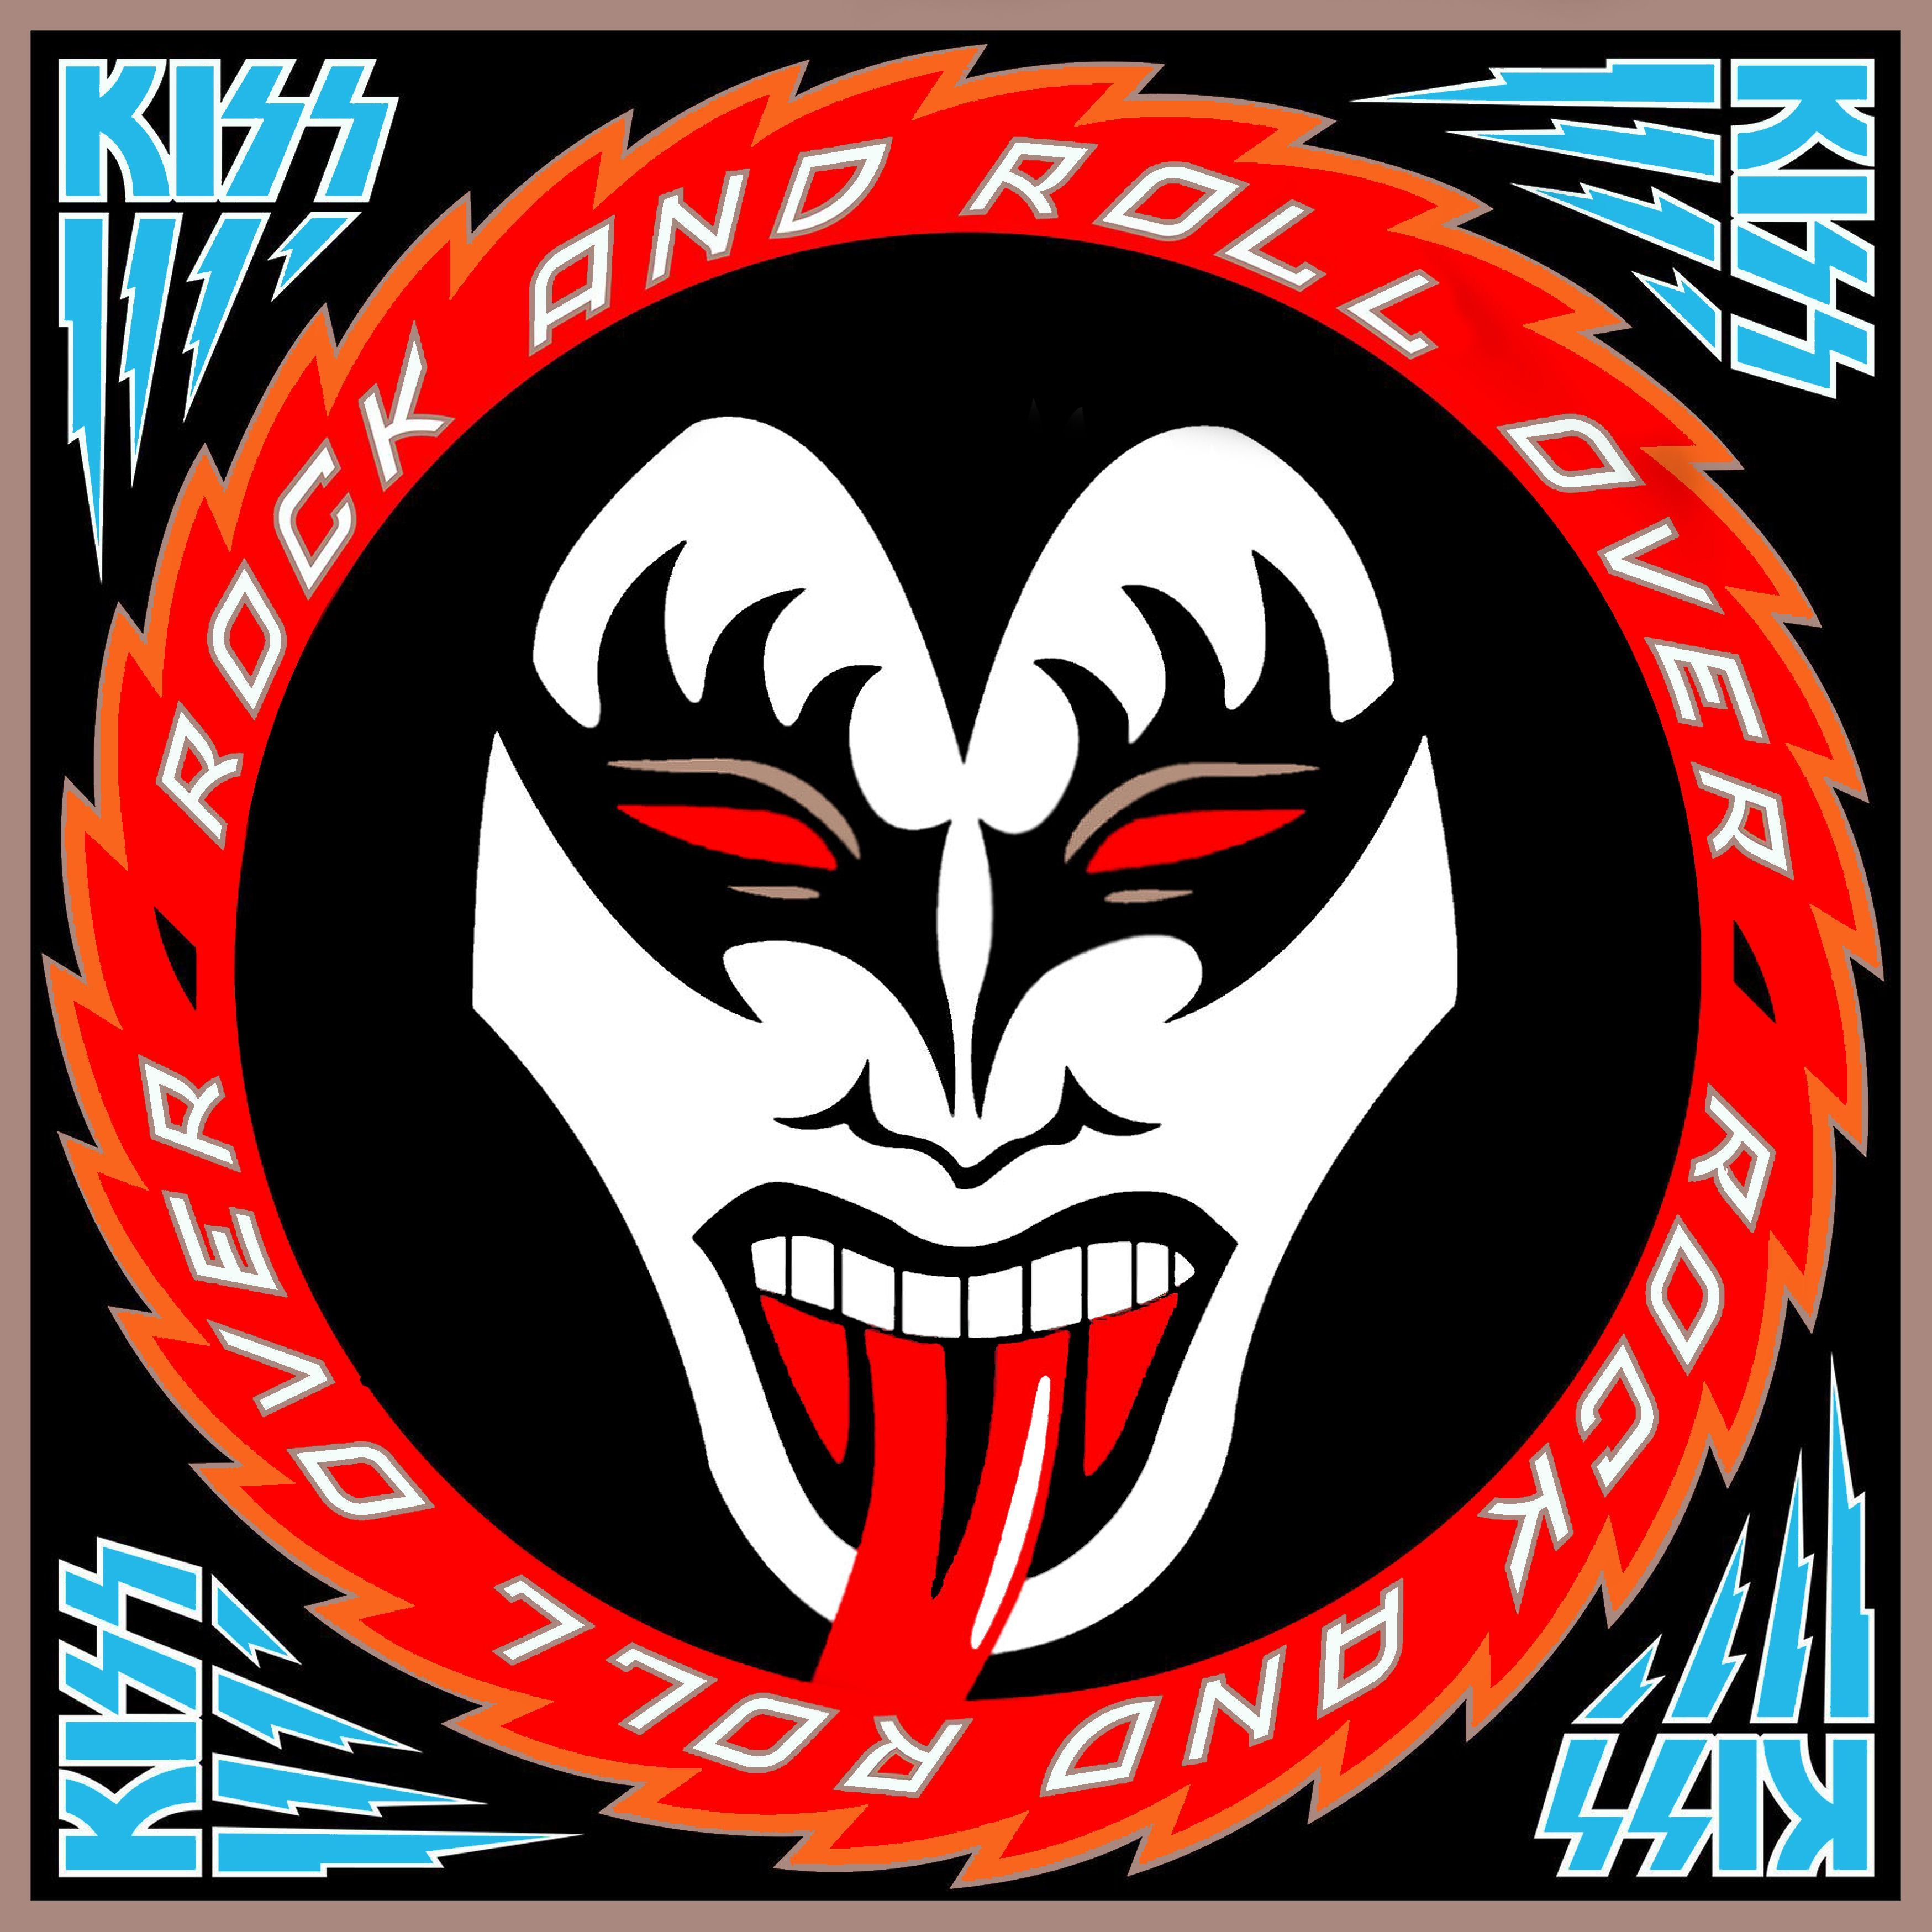 Pin by Dean R on KISS in 2019 | Kiss rock bands, Gene